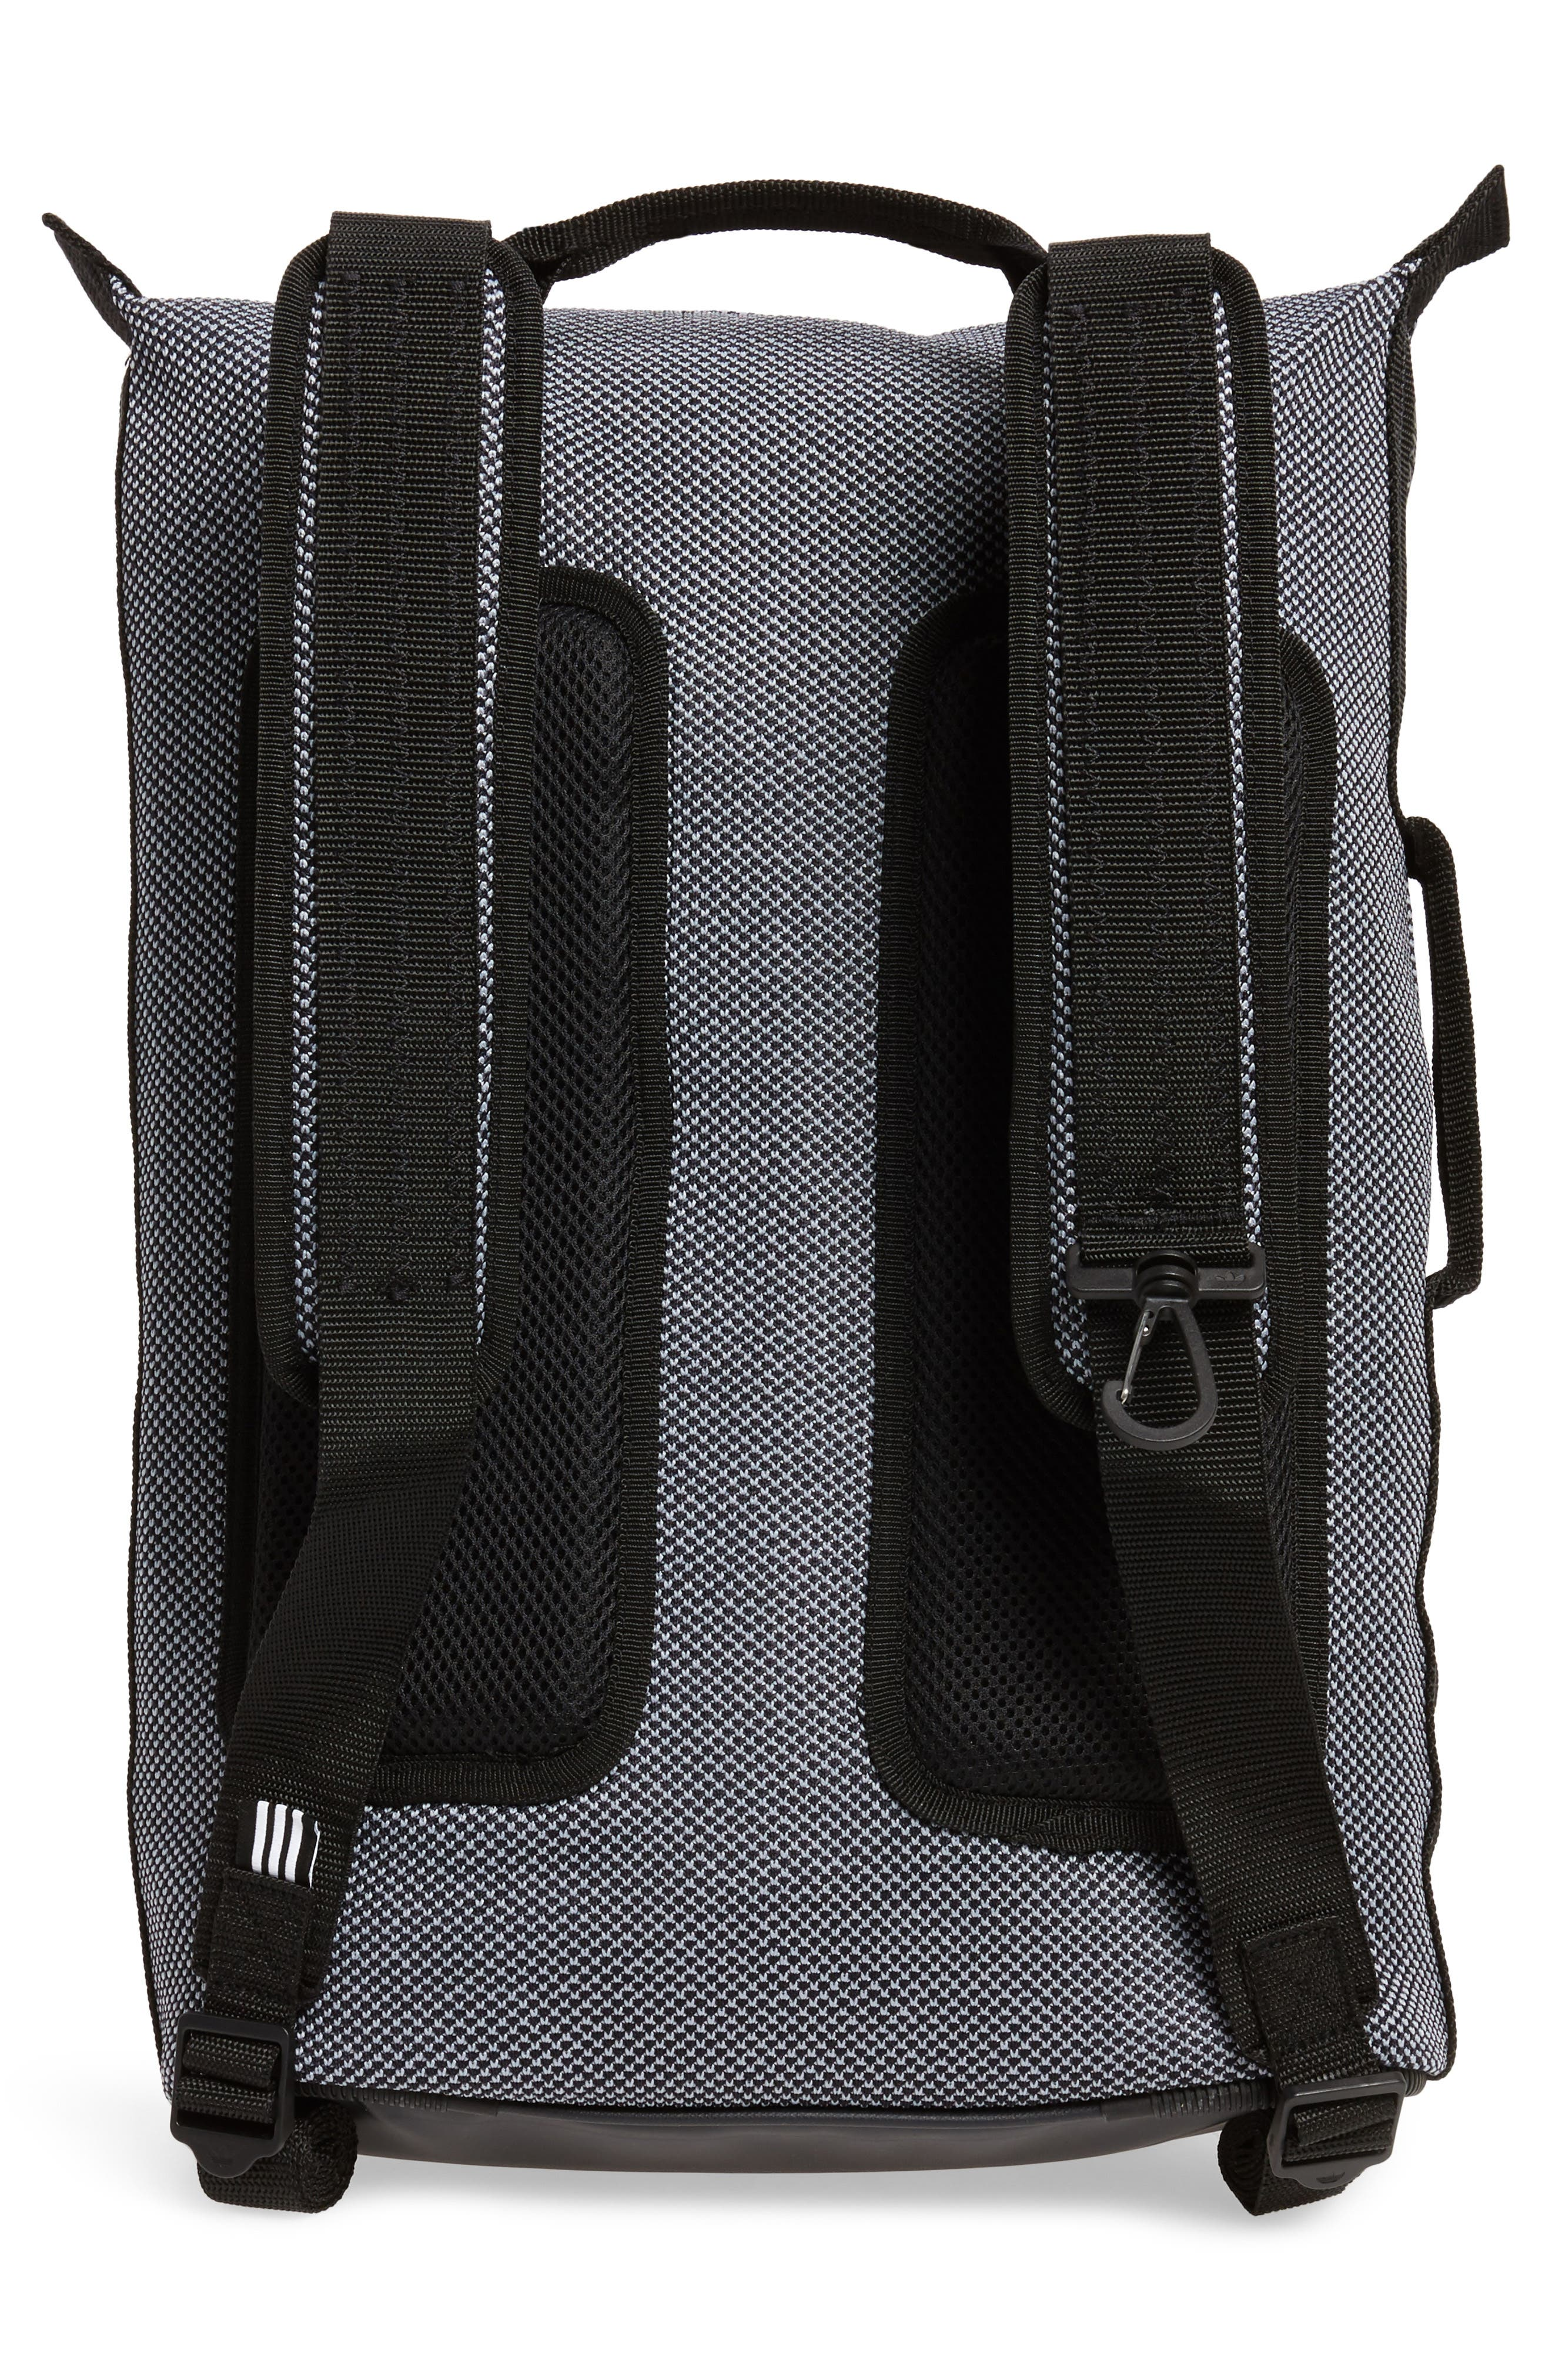 NMD Day Backpack,                             Alternate thumbnail 3, color,                             001